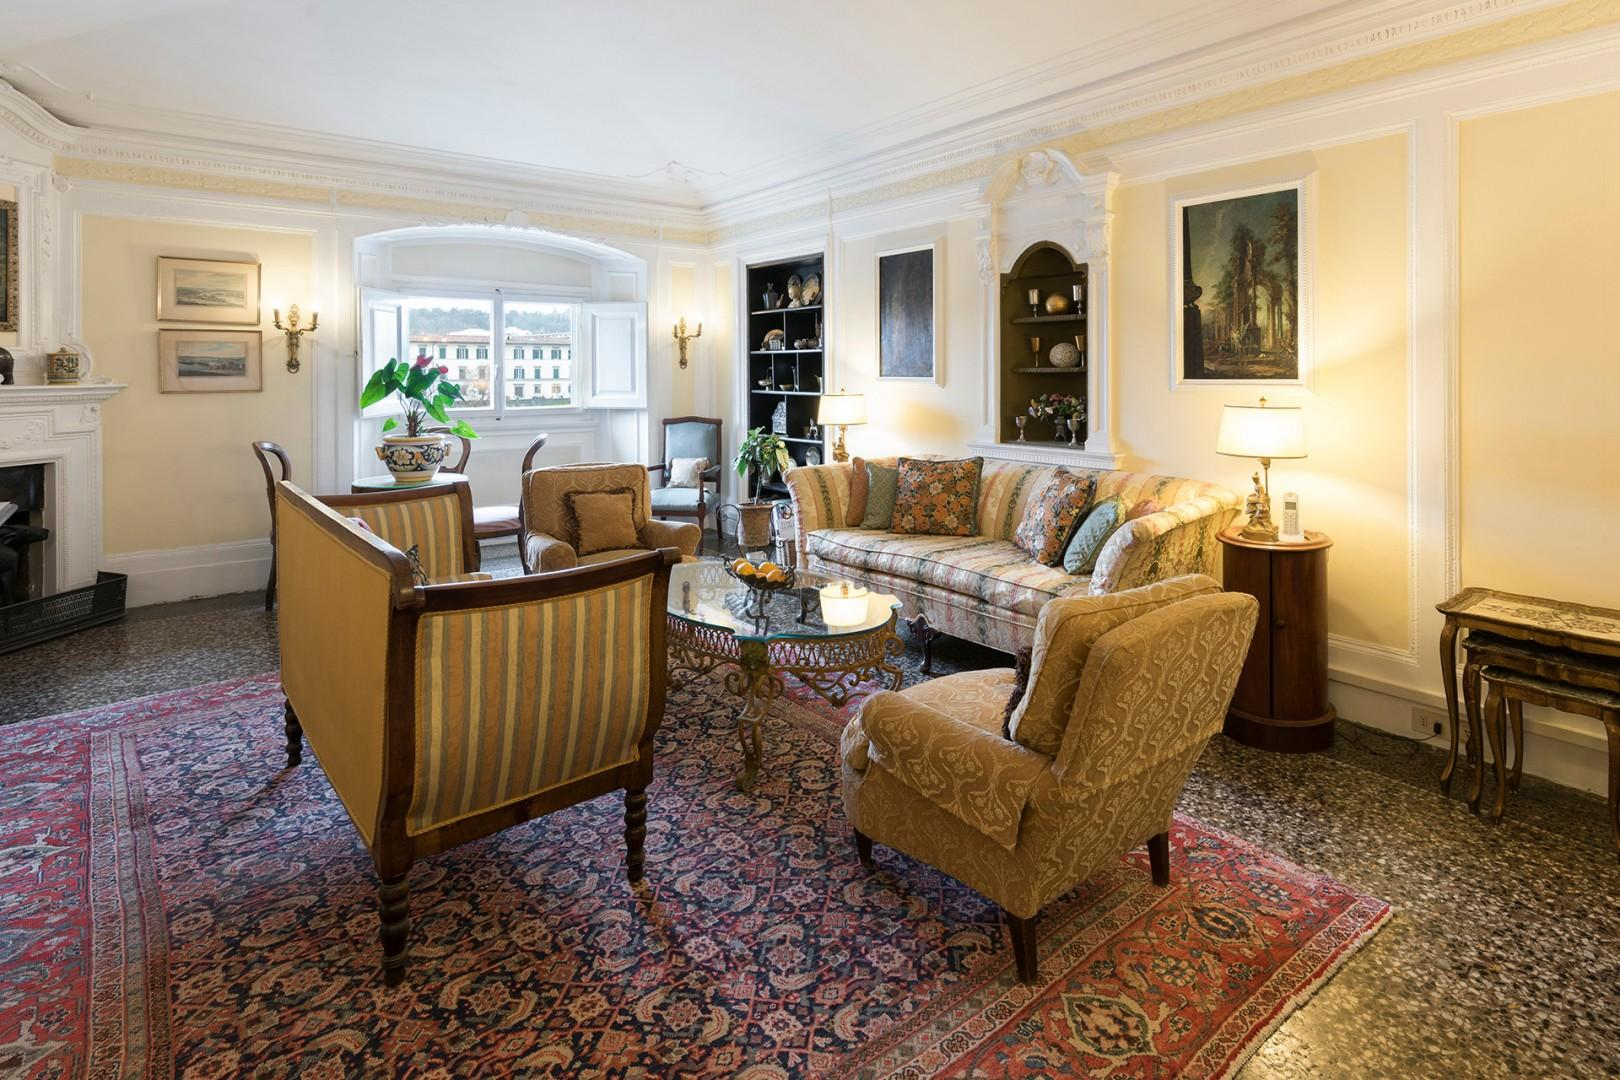 Plenty of seating in the large living room with views of the Arno River and Vespucci bridge.